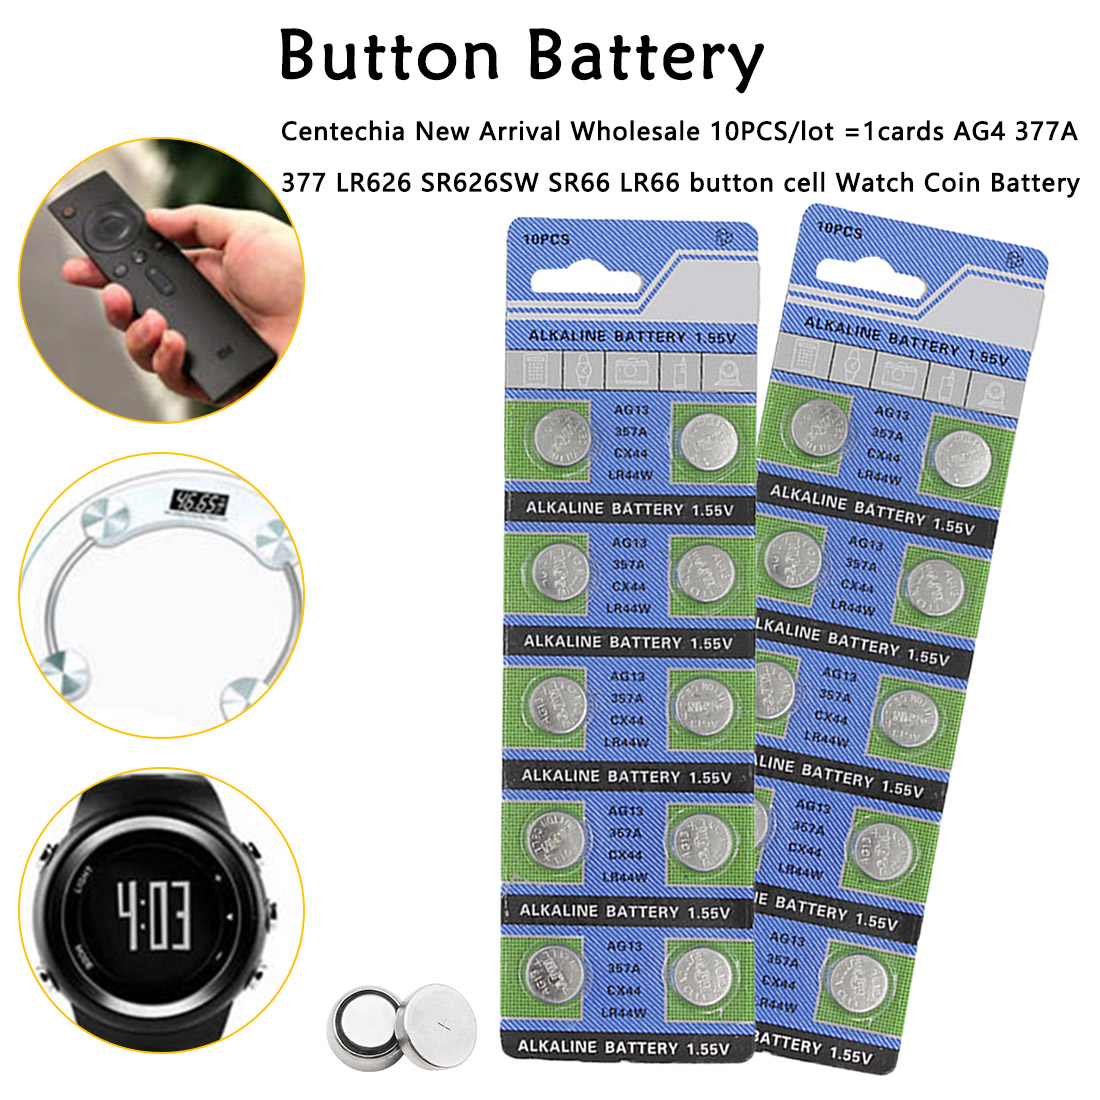 10pcs 1.5V AG13 Battery LR44 L1154 RW82 RW42 SR1154 SP76 A76 357A <font><b>pila</b></font> lr44 SR44 <font><b>AG</b></font> <font><b>13</b></font> Lithium Button Cell Coin Battery image